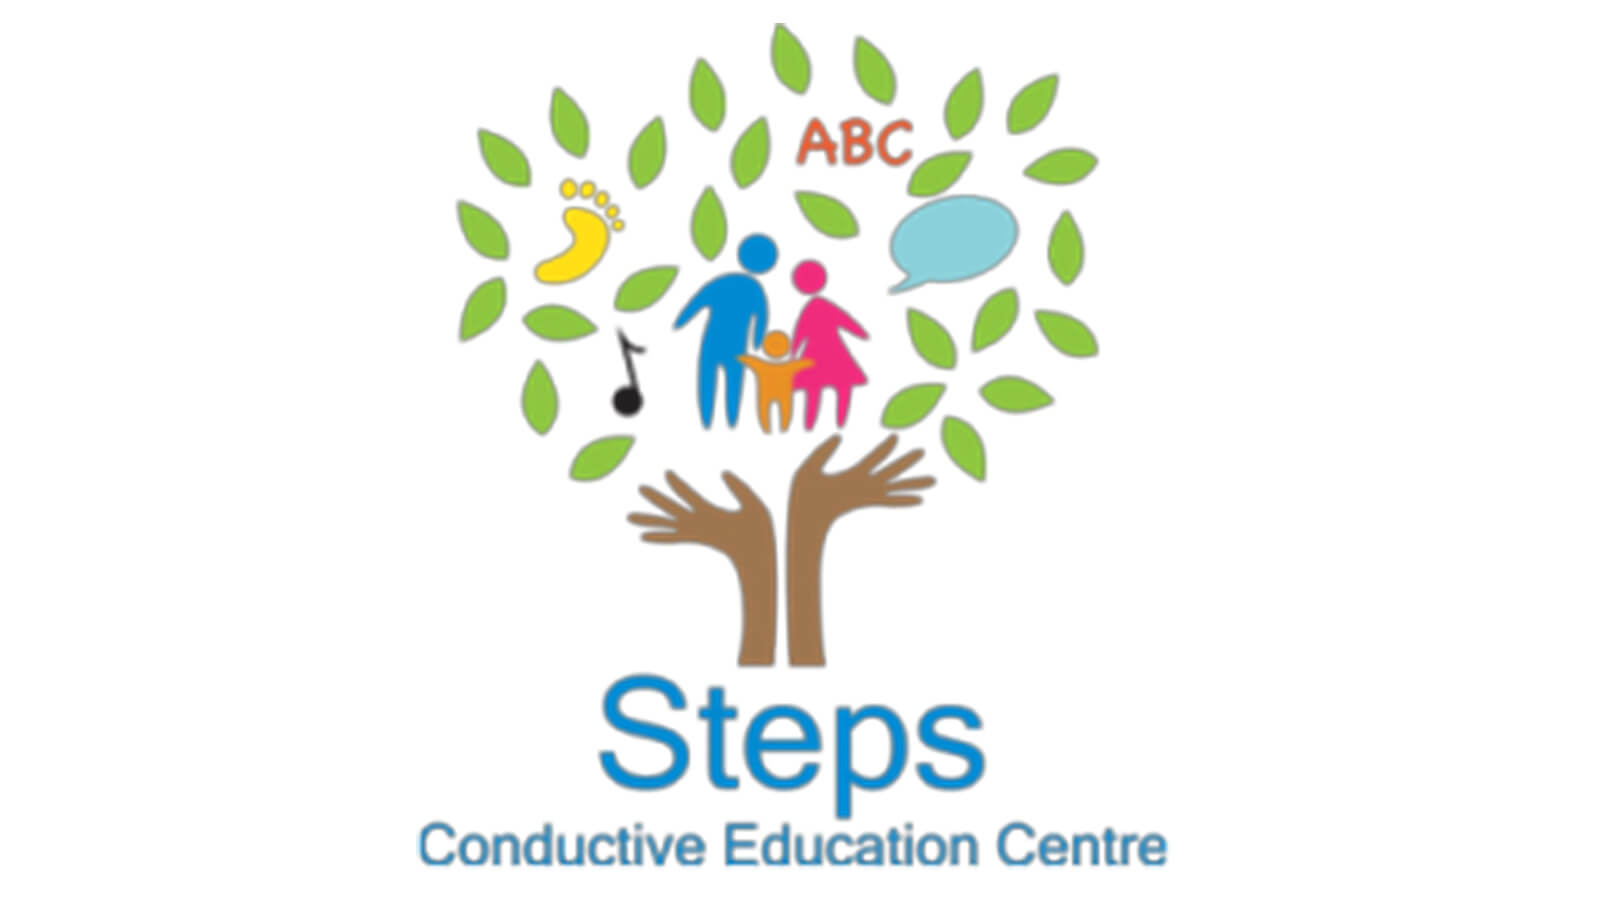 Steps Conductive Education Centre